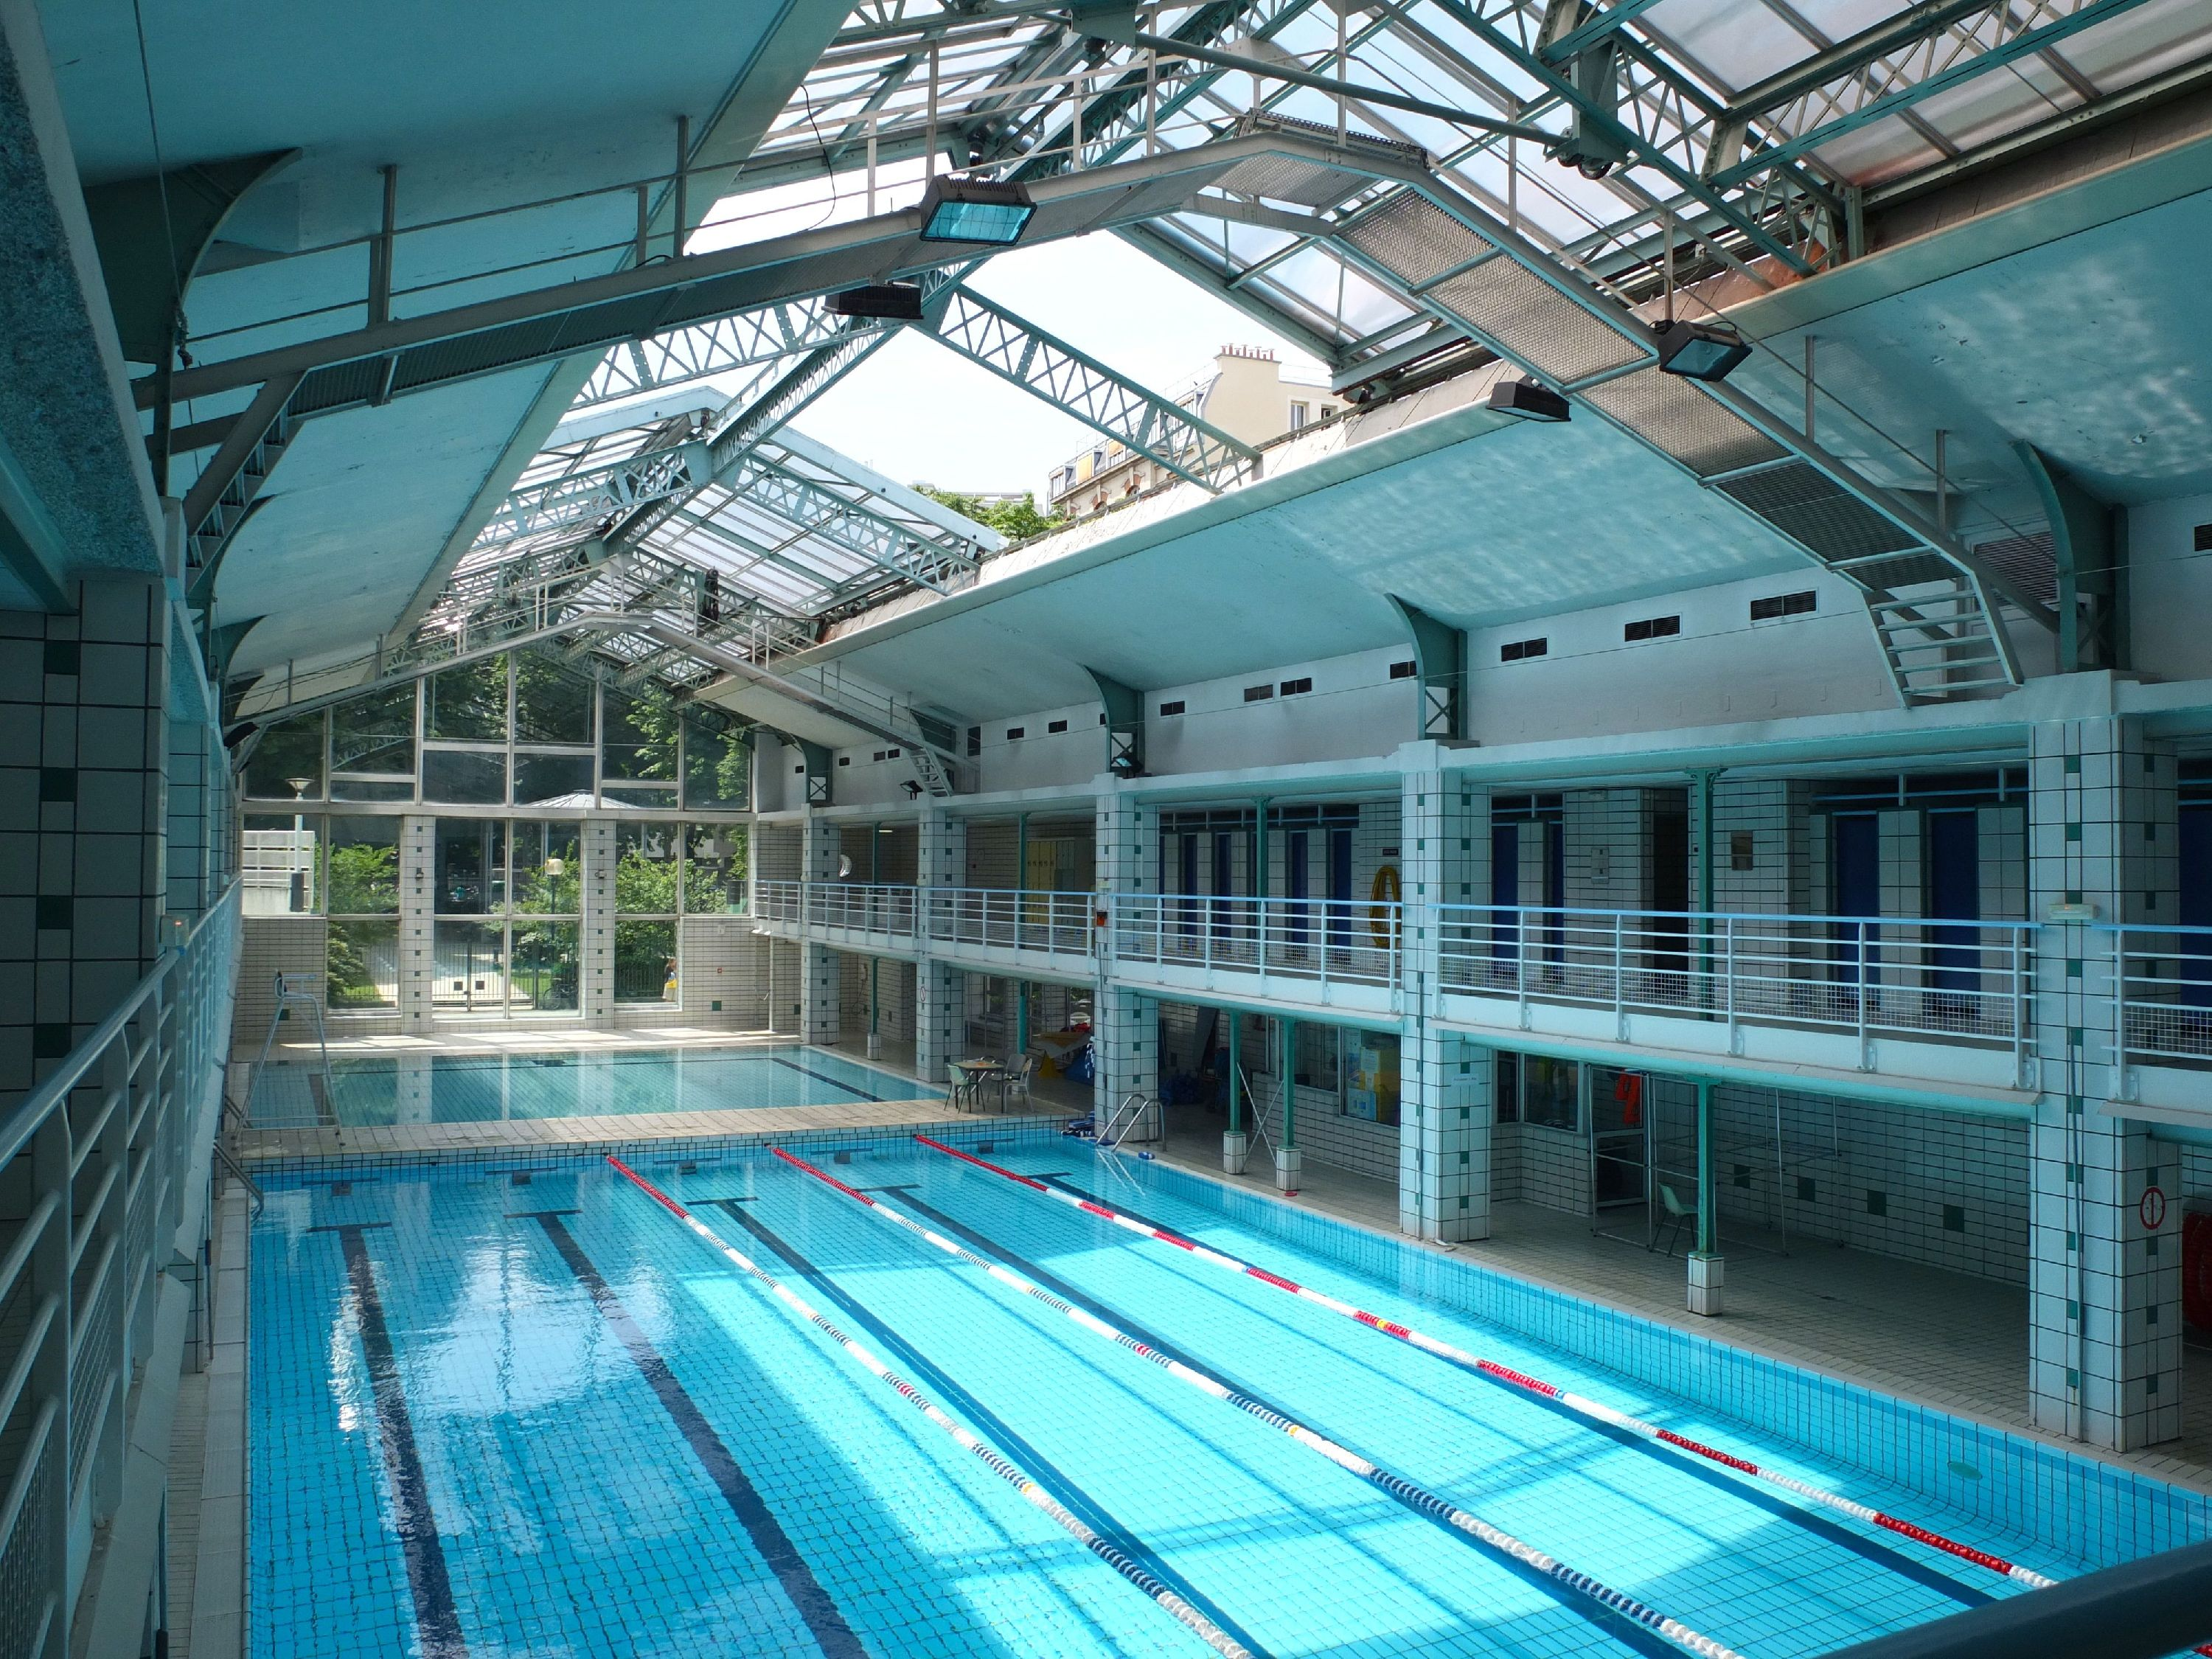 Piscine h bert sport la chapelle paris for Piscine sur bordeaux